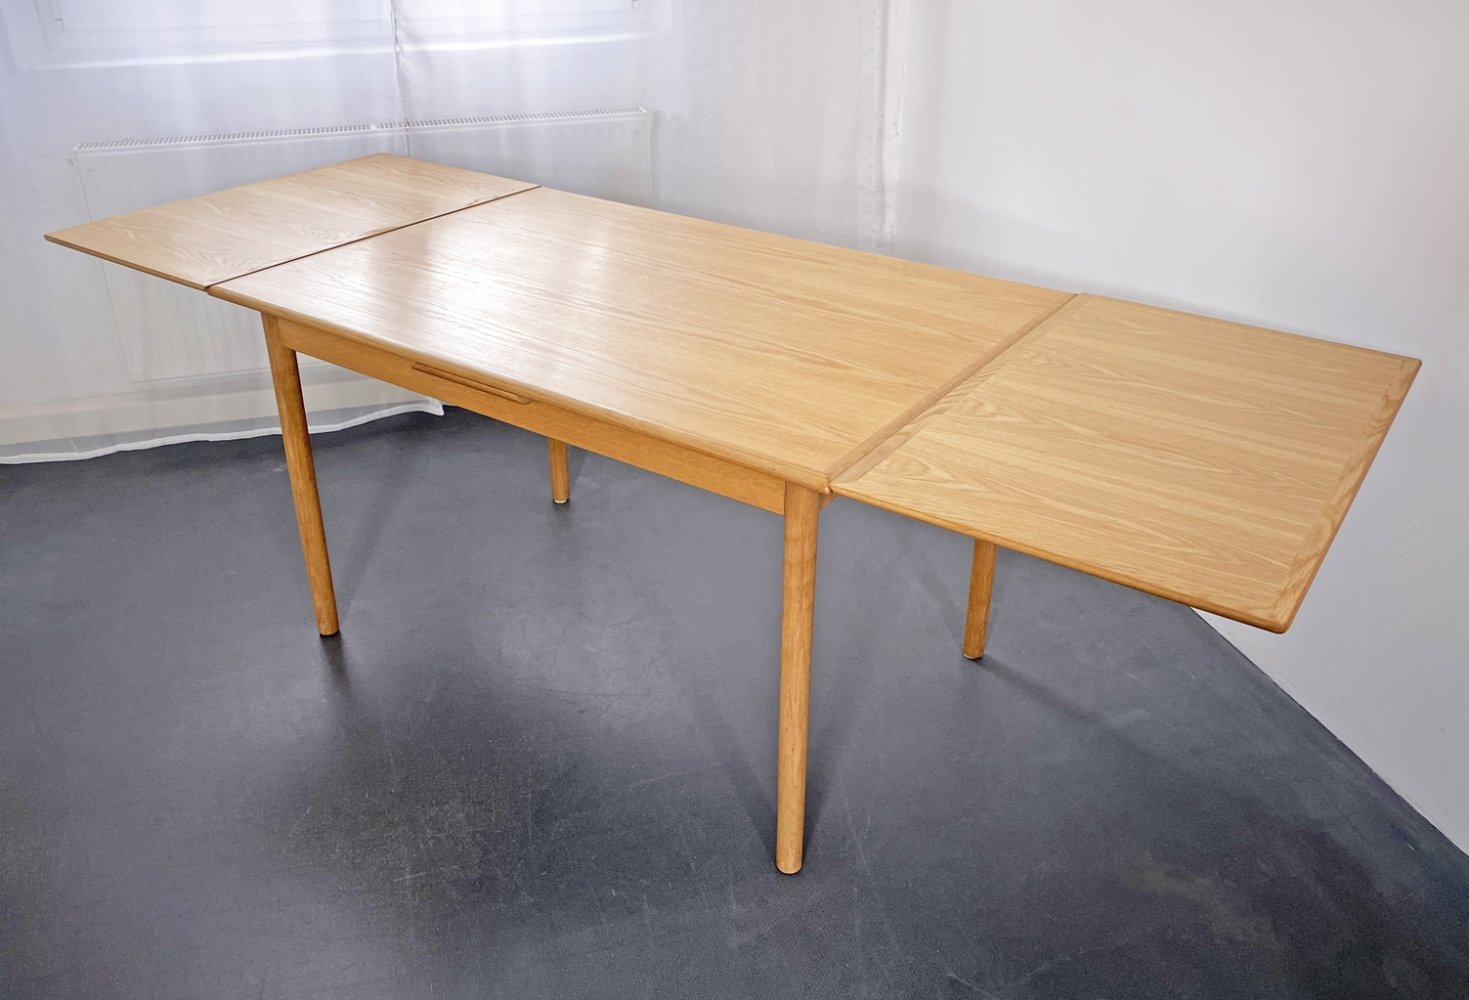 Extendable dining room table by HS Mobler, 1960s